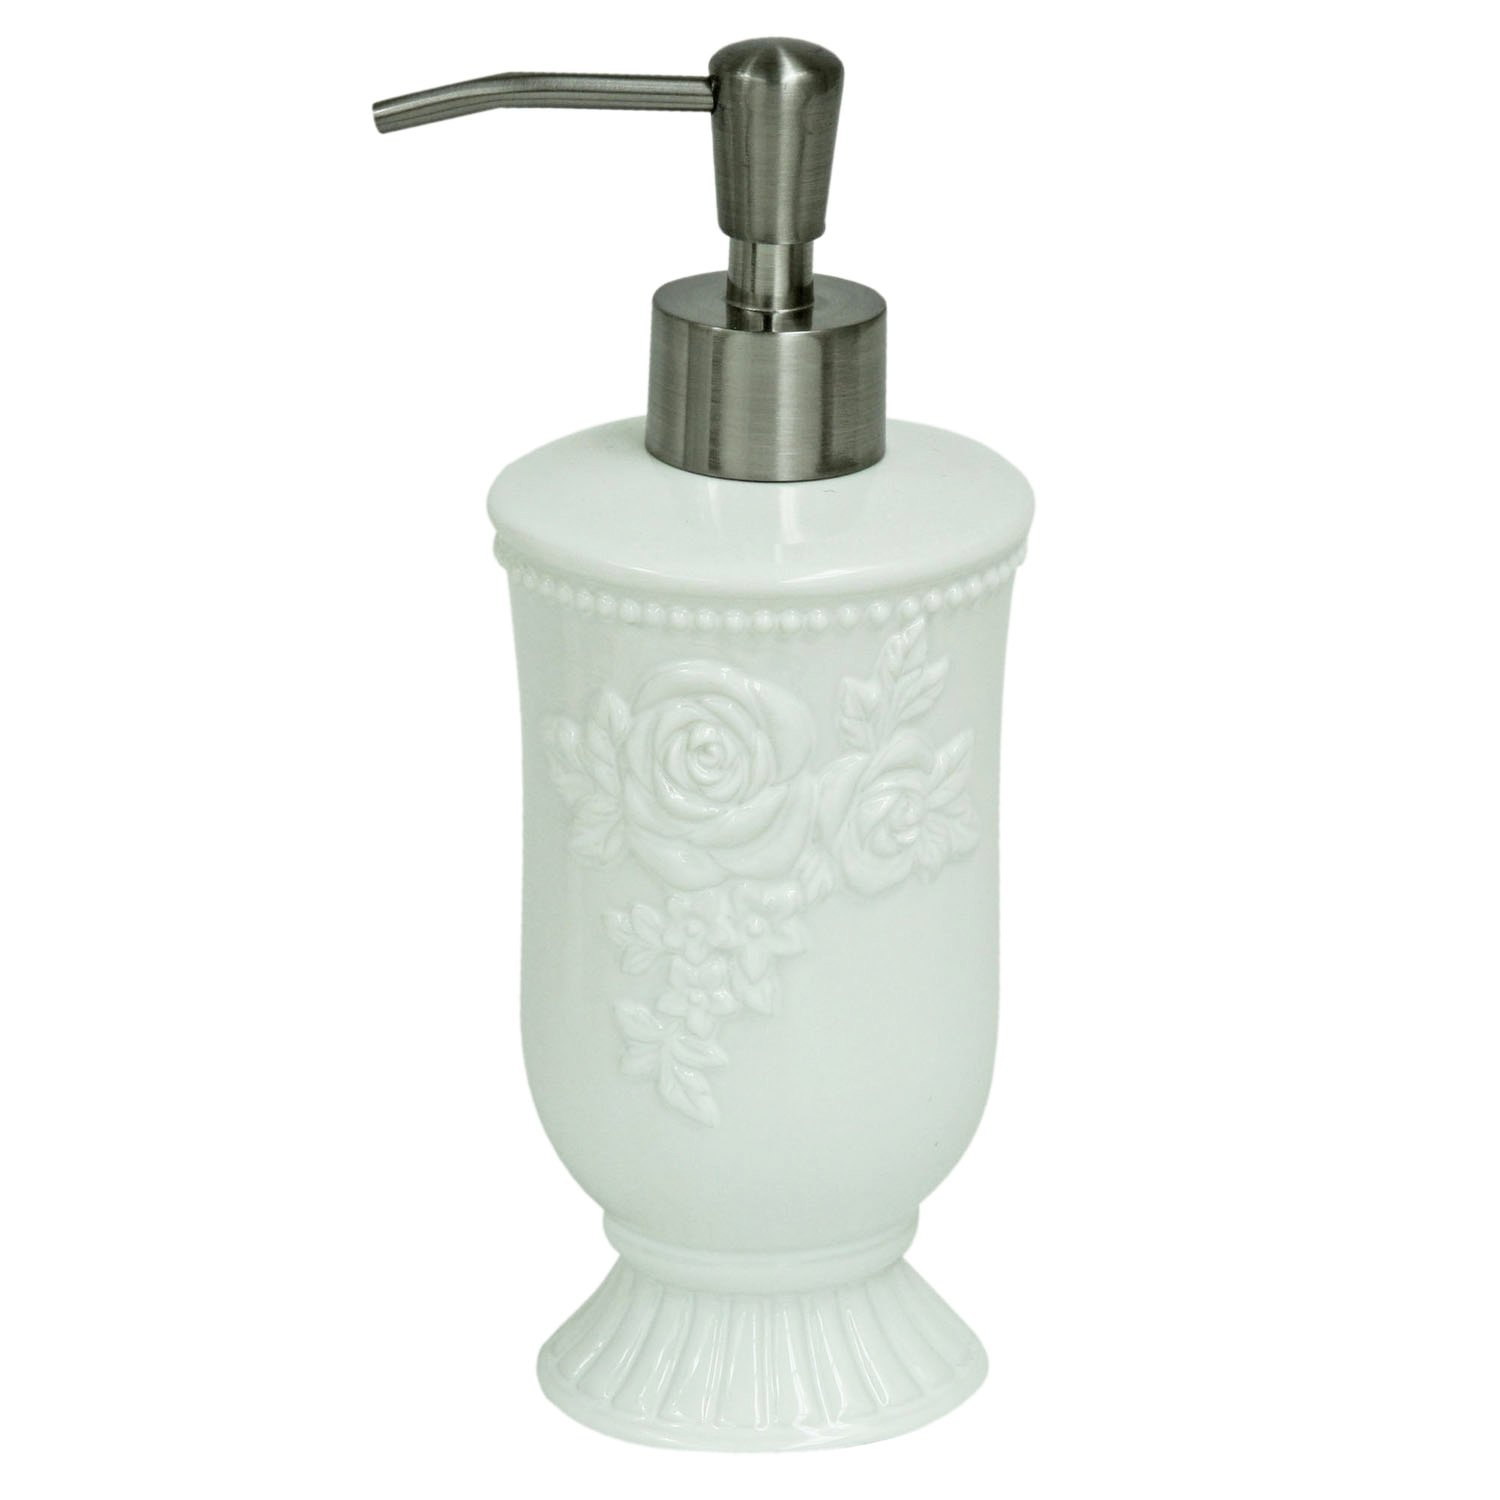 Bacova Guild Jessica Simpson Ellie Bath Accessories Lotion Dispenser